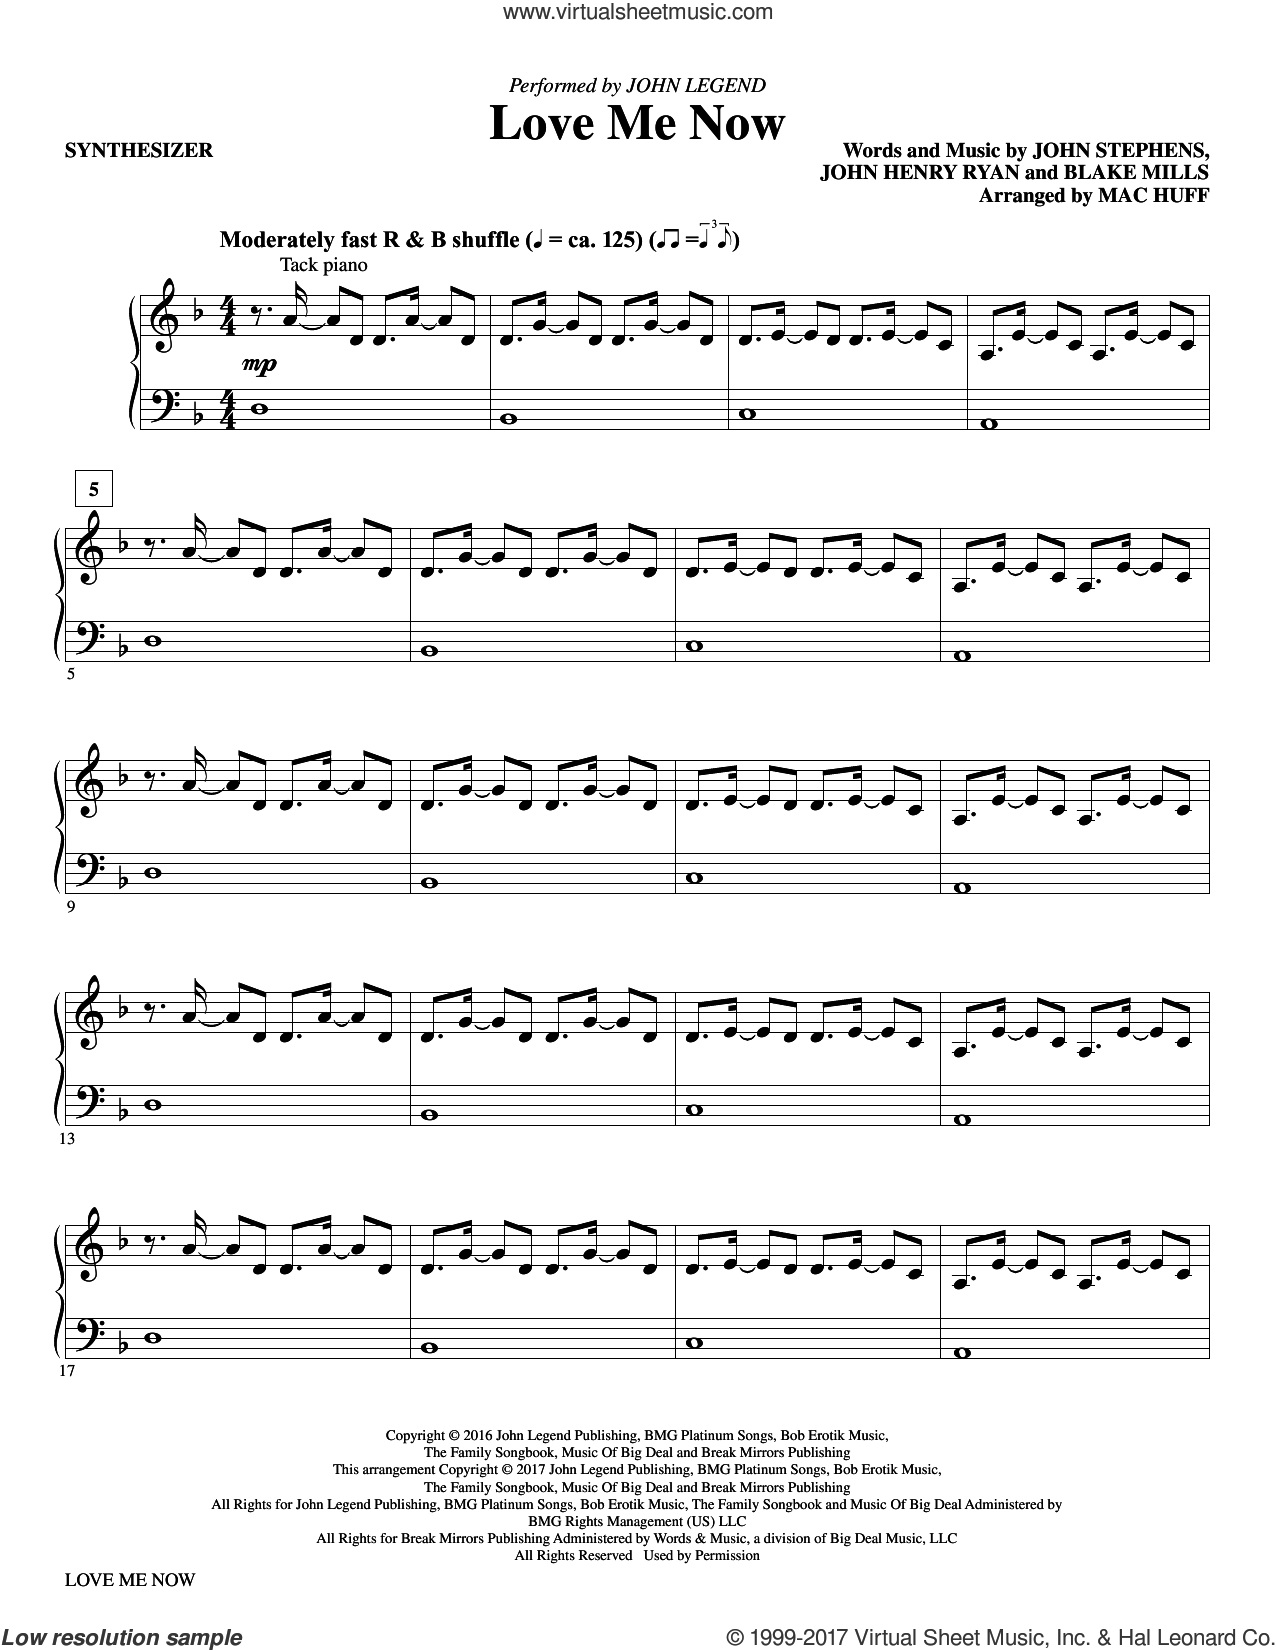 Love Me Now (complete set of parts) sheet music for orchestra/band by Mac Huff, Blake Mills, John Henry Ryan, John Legend and John Stephens, intermediate. Score Image Preview.